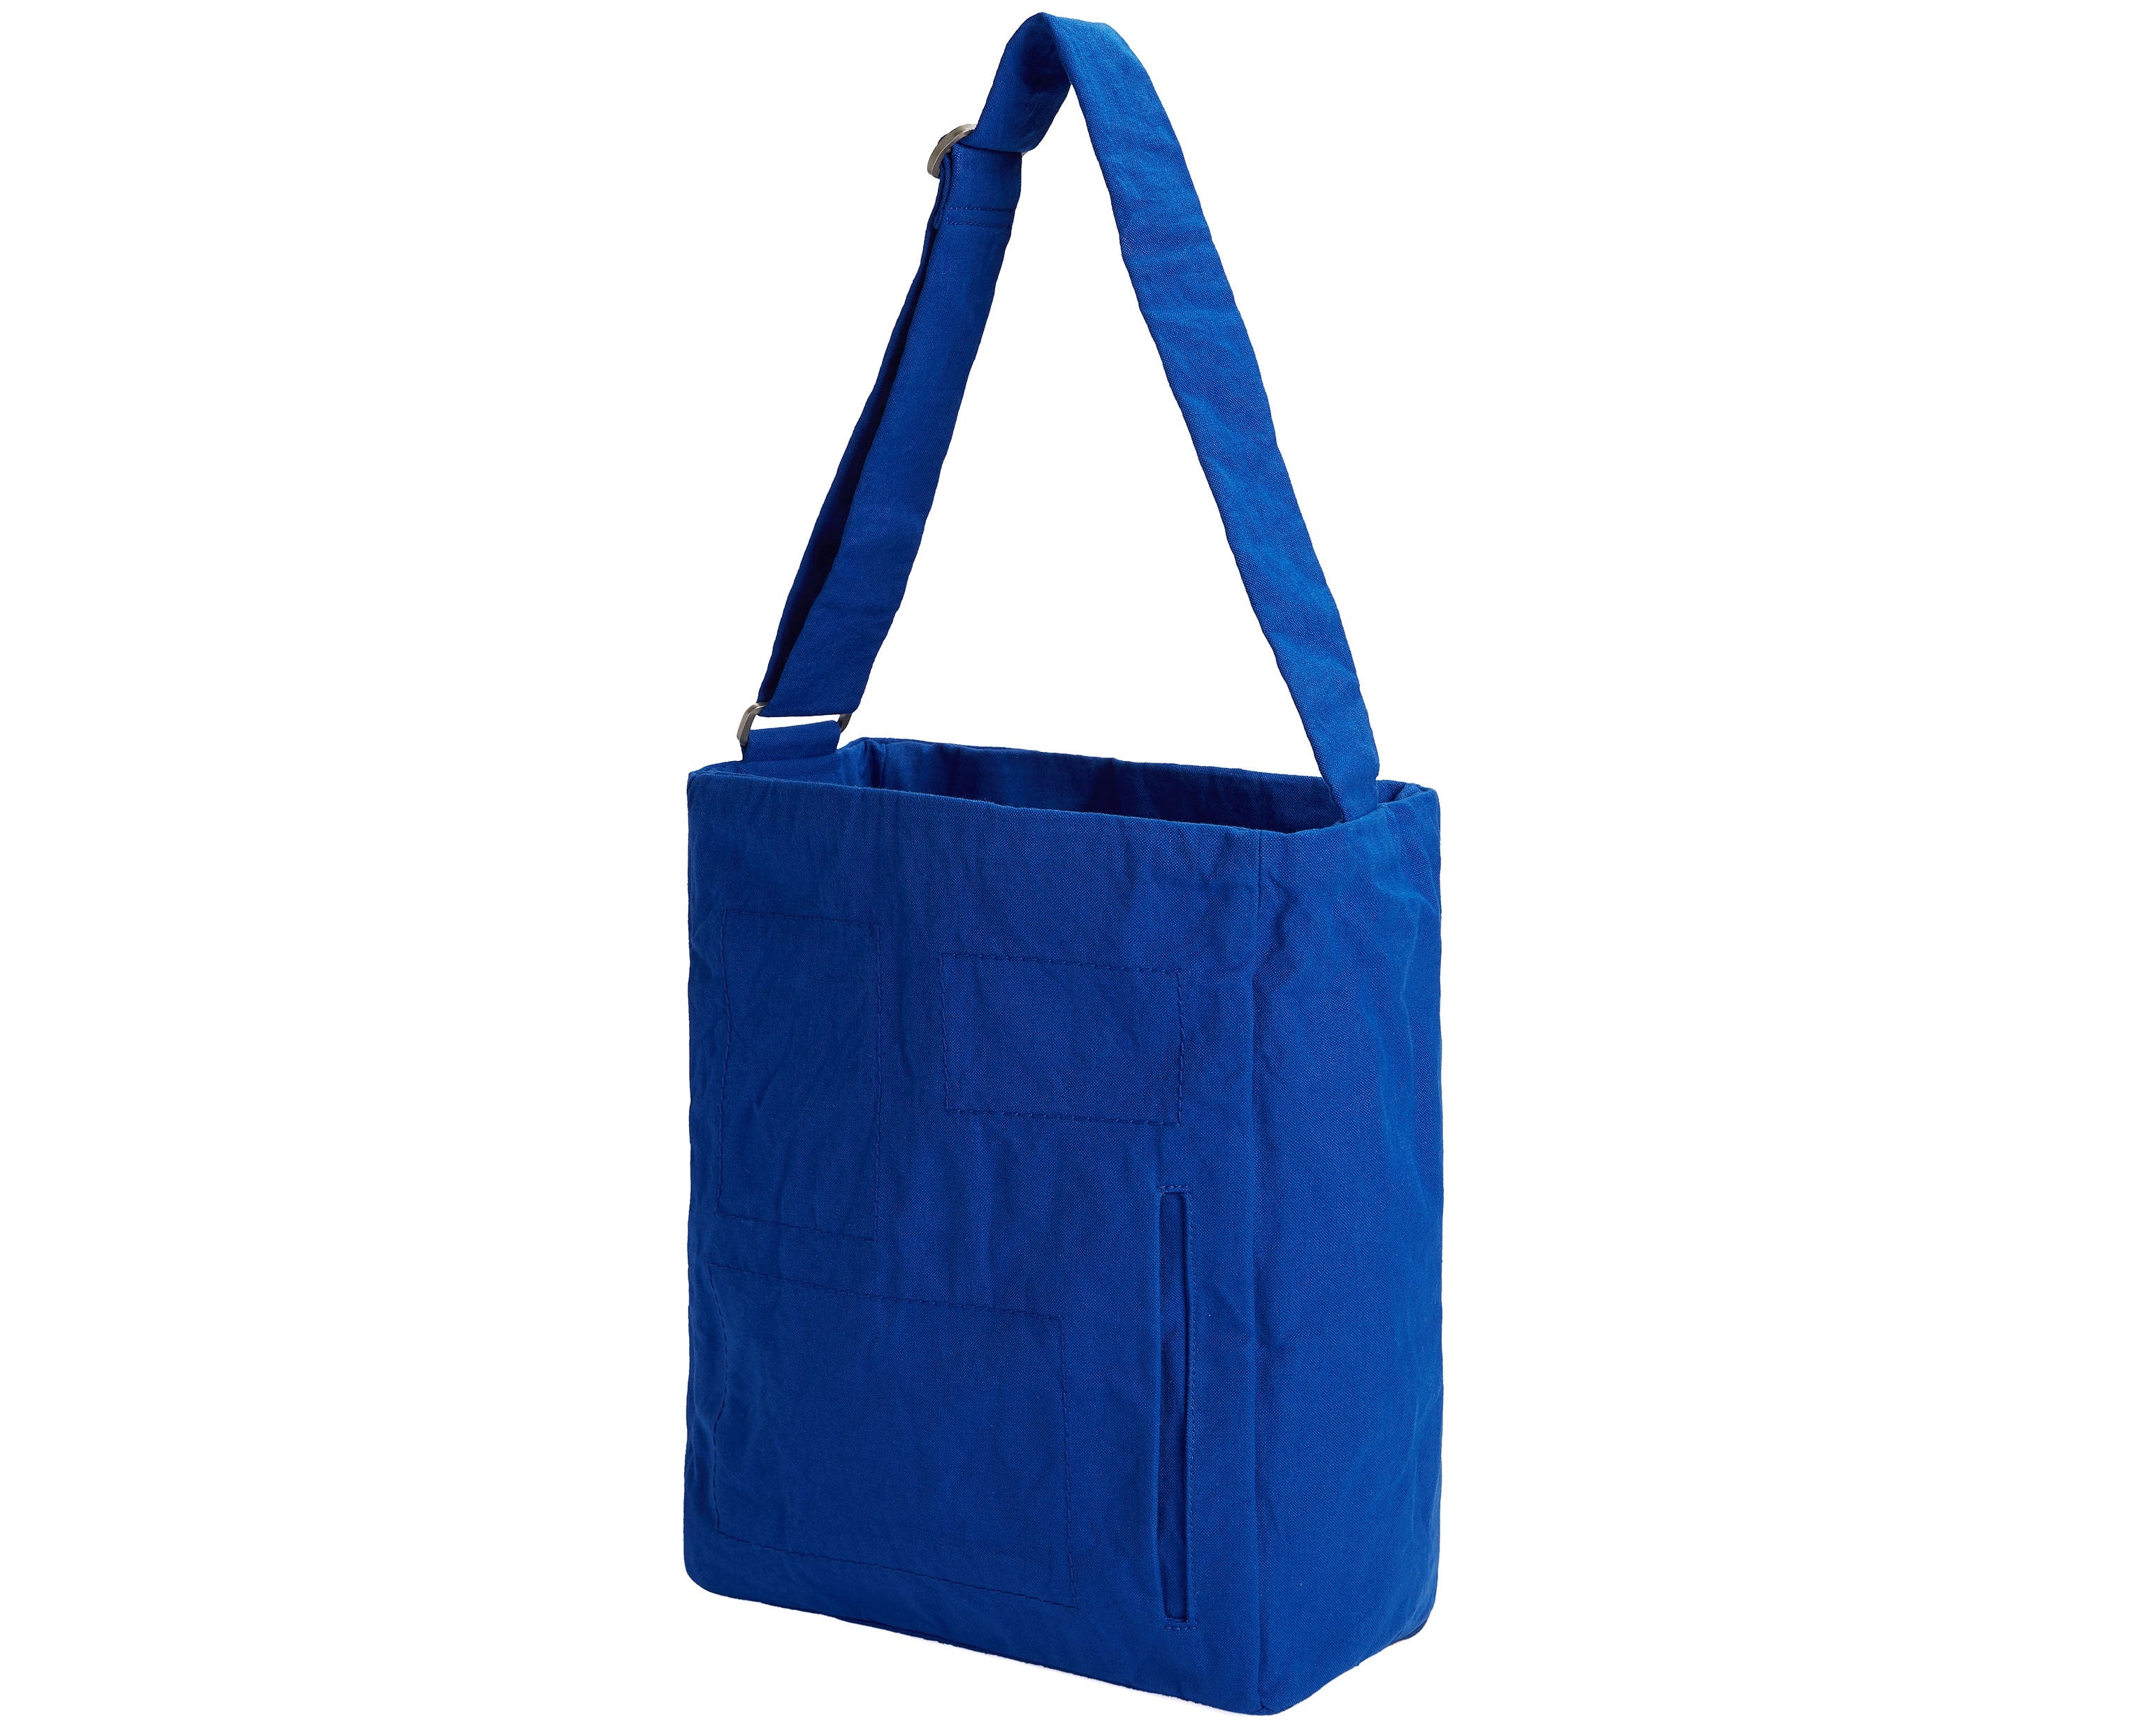 The Joiner Bag Blue